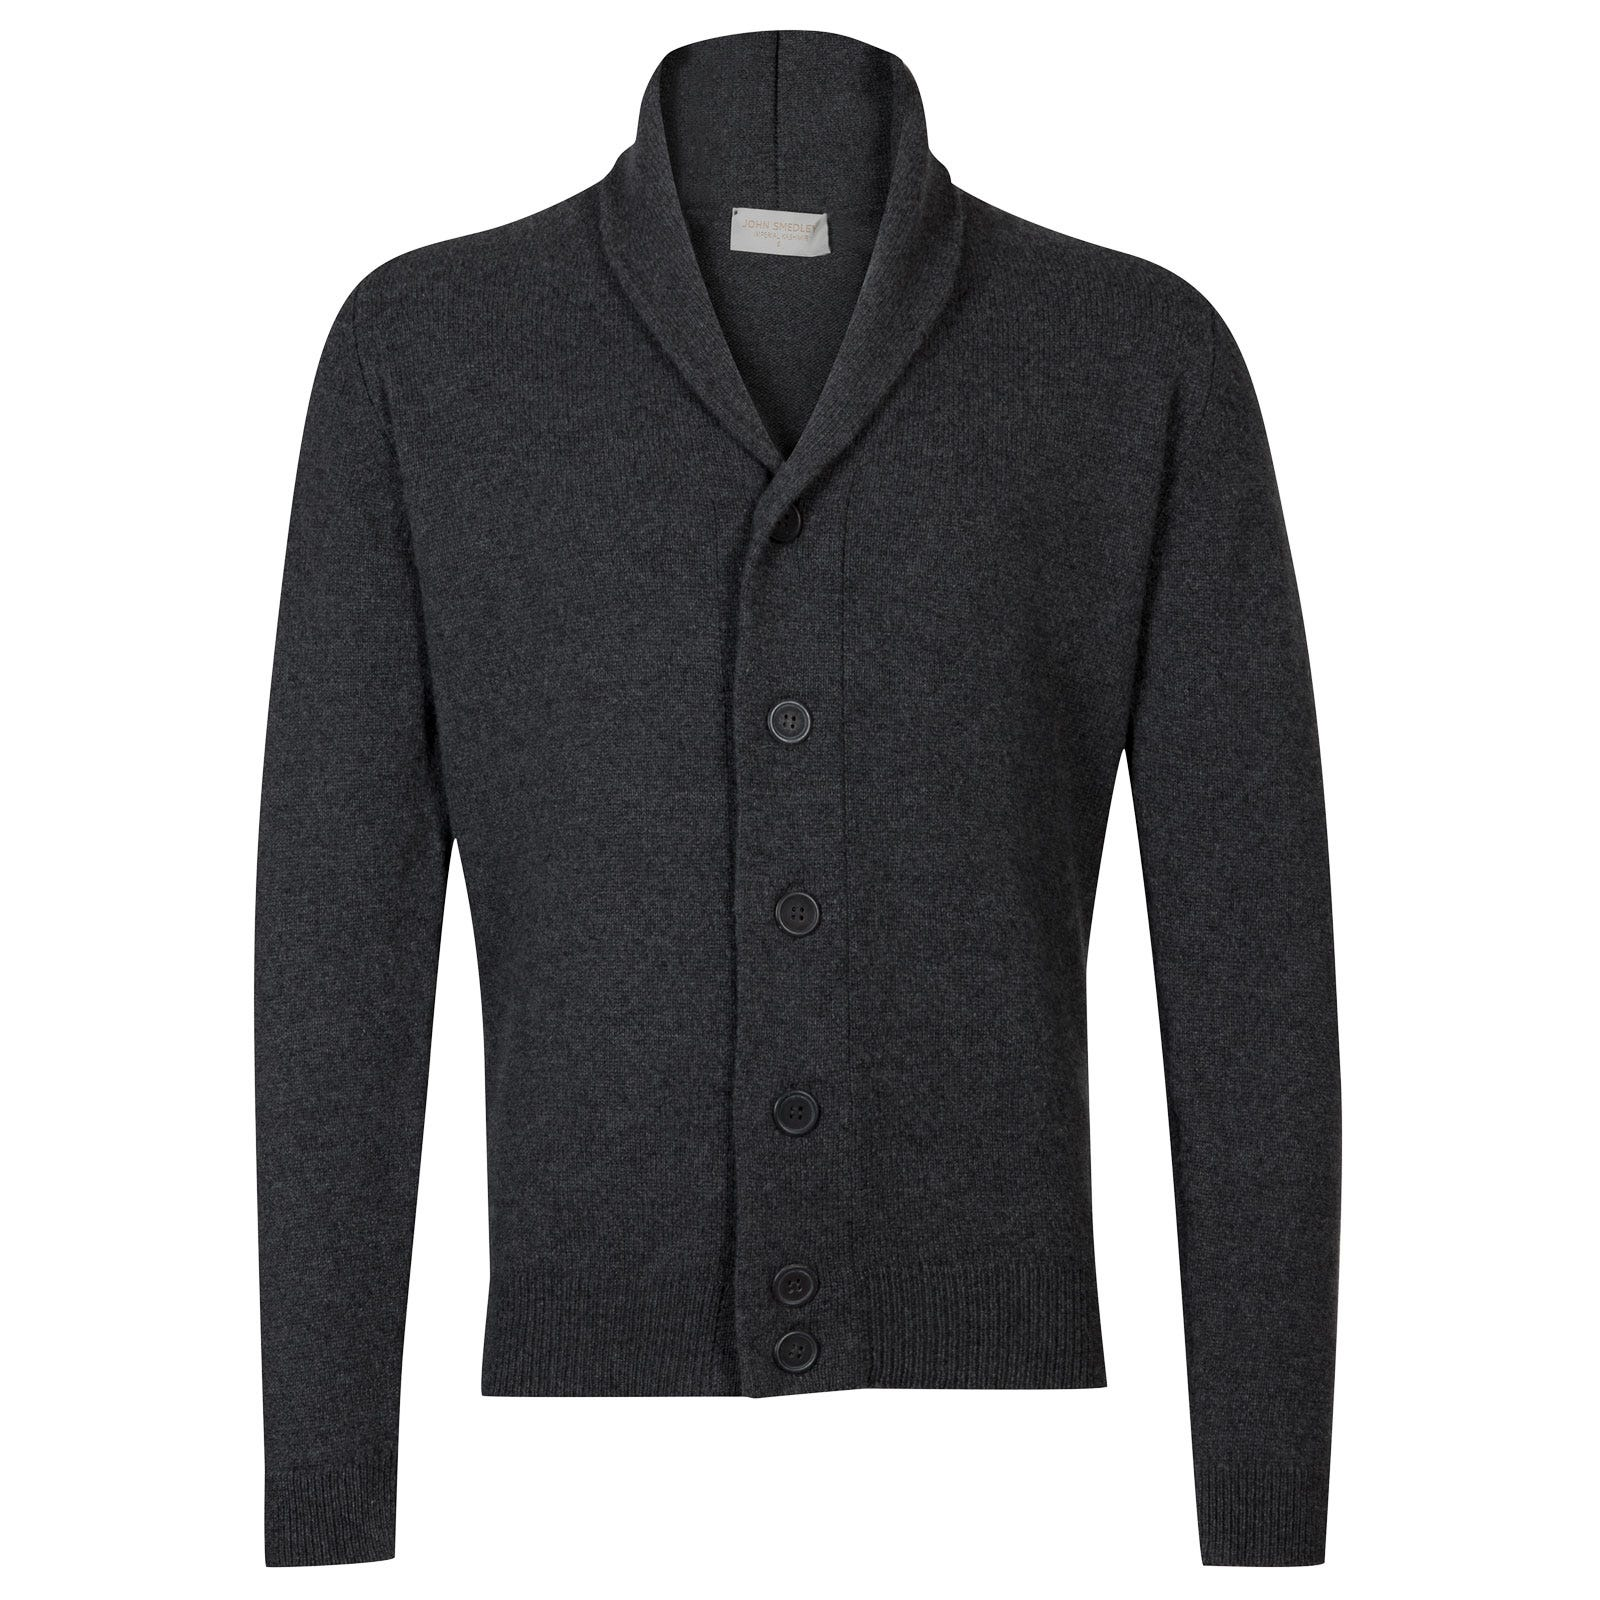 John Smedley patterson Wool and Cashmere Jacket in Charcoal-XL